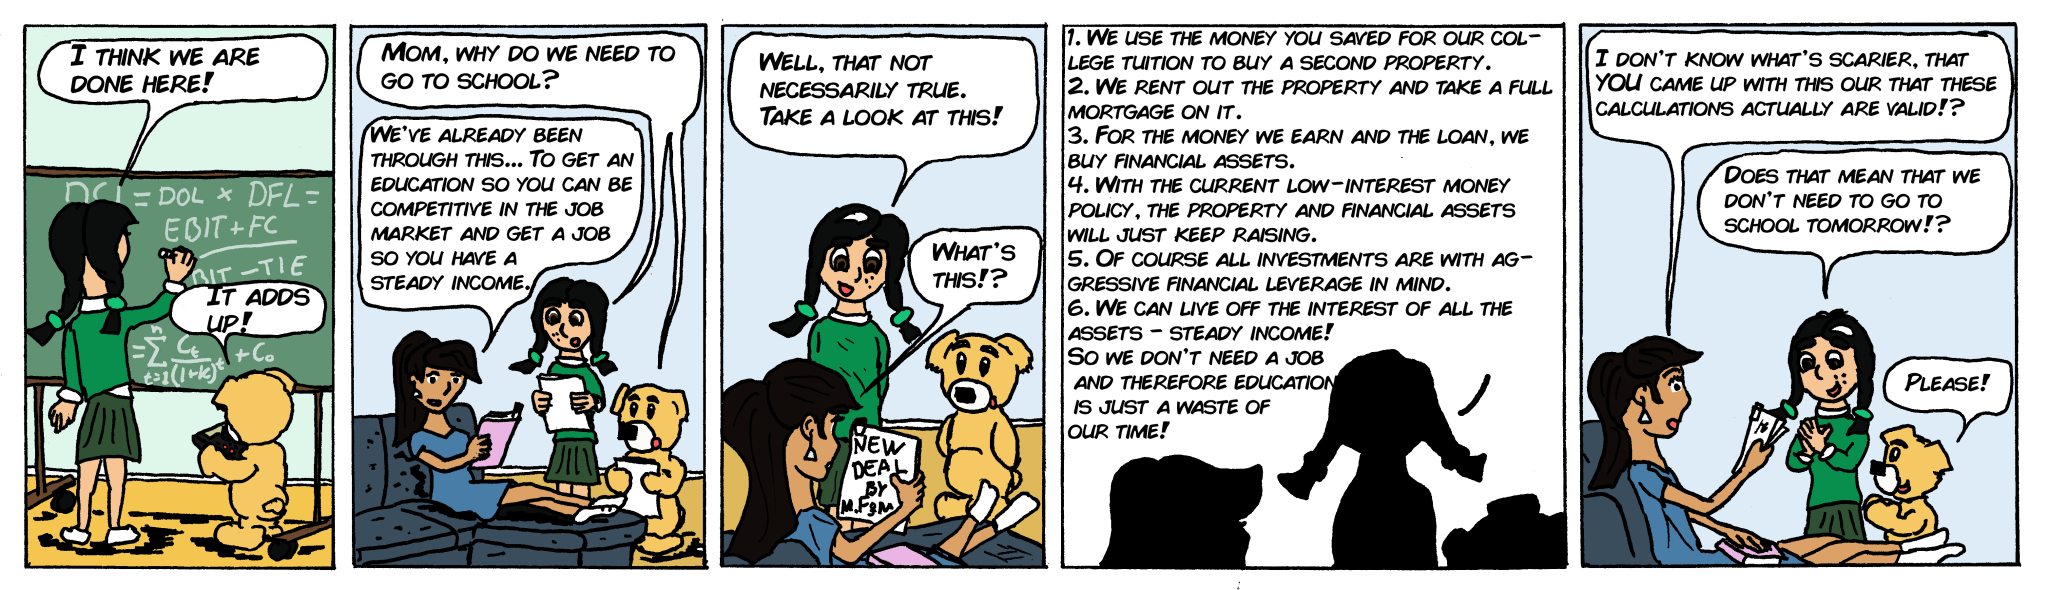 comics about that financial leverage pays off mora than work